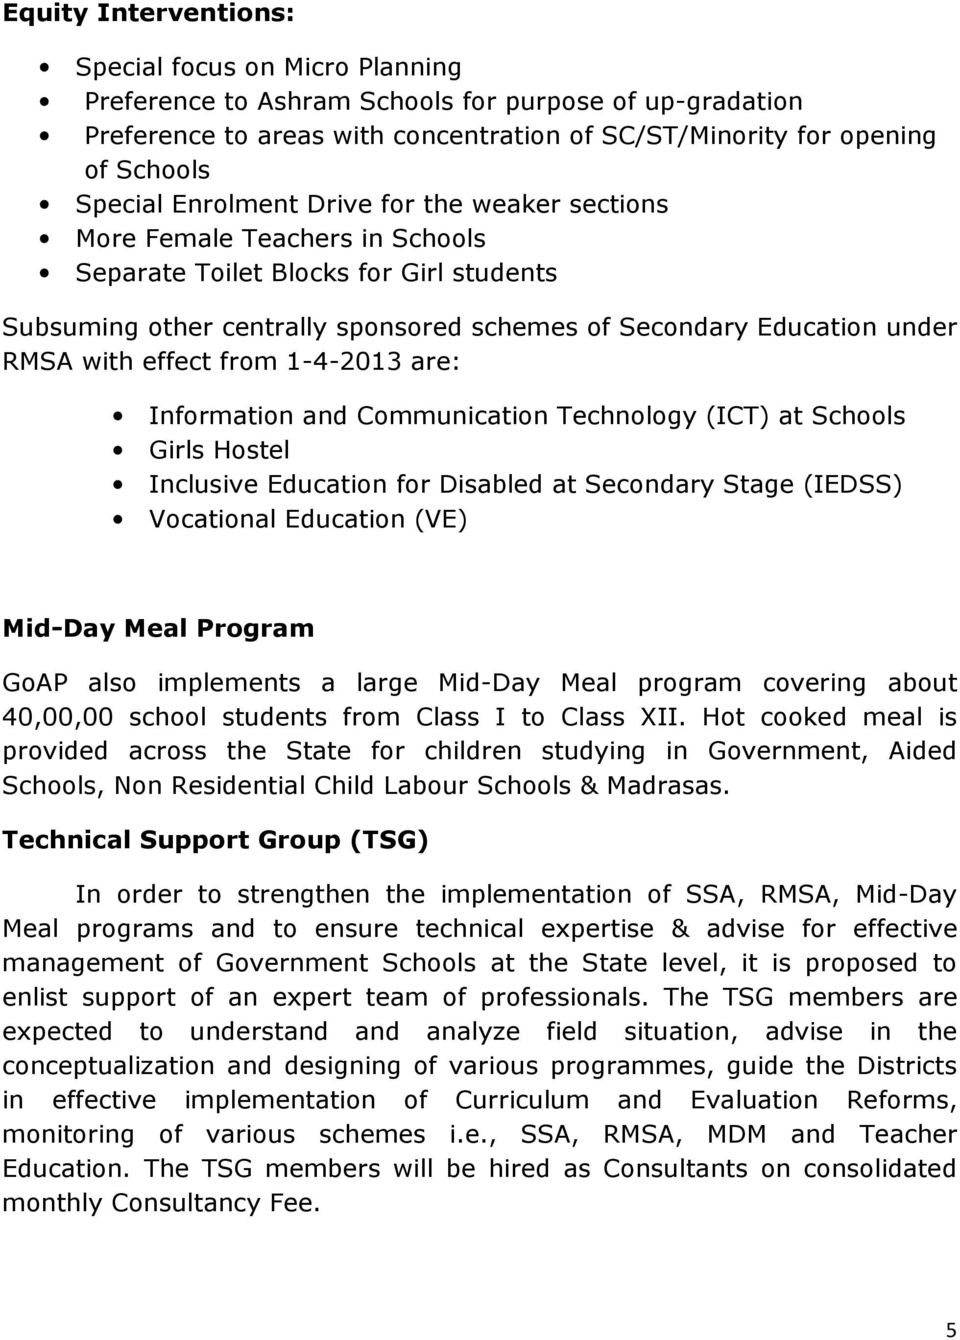 effect from 1-4-2013 are Information and Communication Technology (ICT) at Schools Girls Hostel Inclusive Education for Disabled at Secondary Stage (IEDSS) Vocational Education (VE) Mid-Day Meal